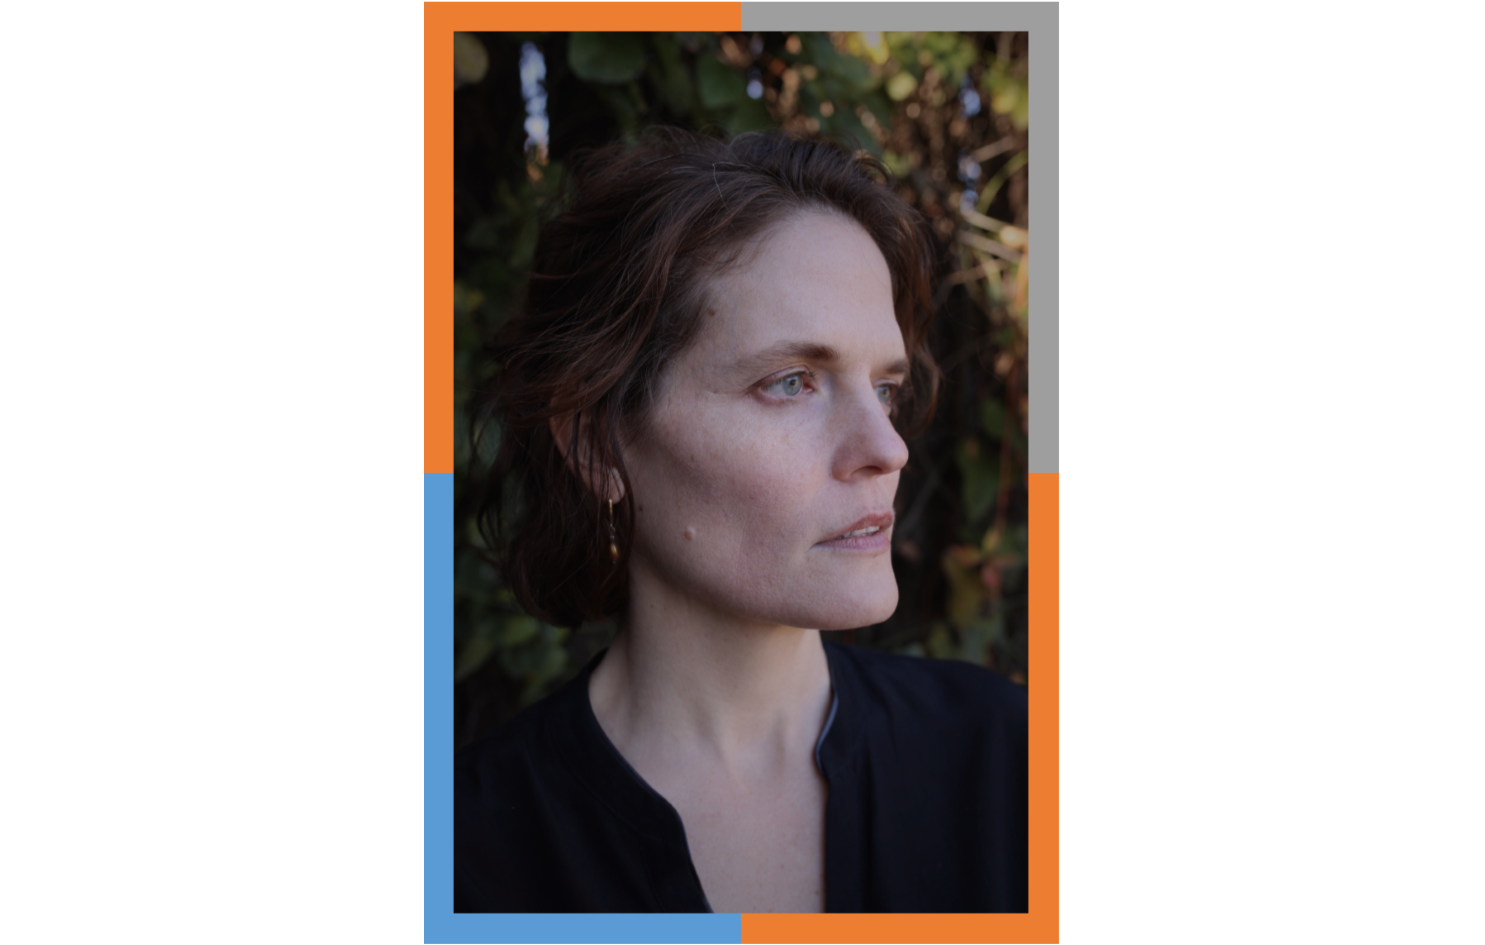 REBECCA GAYLE HOWELL is the author of  American Purgatory , winner of the 2016 Sexton Prize, and her debut collection,  Render/An Apocalypse , was a finalist for  Foreword 's 2014 Book of the Year. Howell is also the translator of Amal al-Jubouri's verse memoir of the Iraq War,  Hagar Before the Occupation/Hagar After the Occupation . Among Howell's honors are fellowships from the Fine Arts Work Center in Provincetown, the Kentucky Arts Council, and the Carson McCullers Center, as well as a Pushcart Prize. Howell edits poetry for the  Oxford American  and serves as James Still Writer-in-Residence at the Hindman Settlement School.   Learn more about howell.